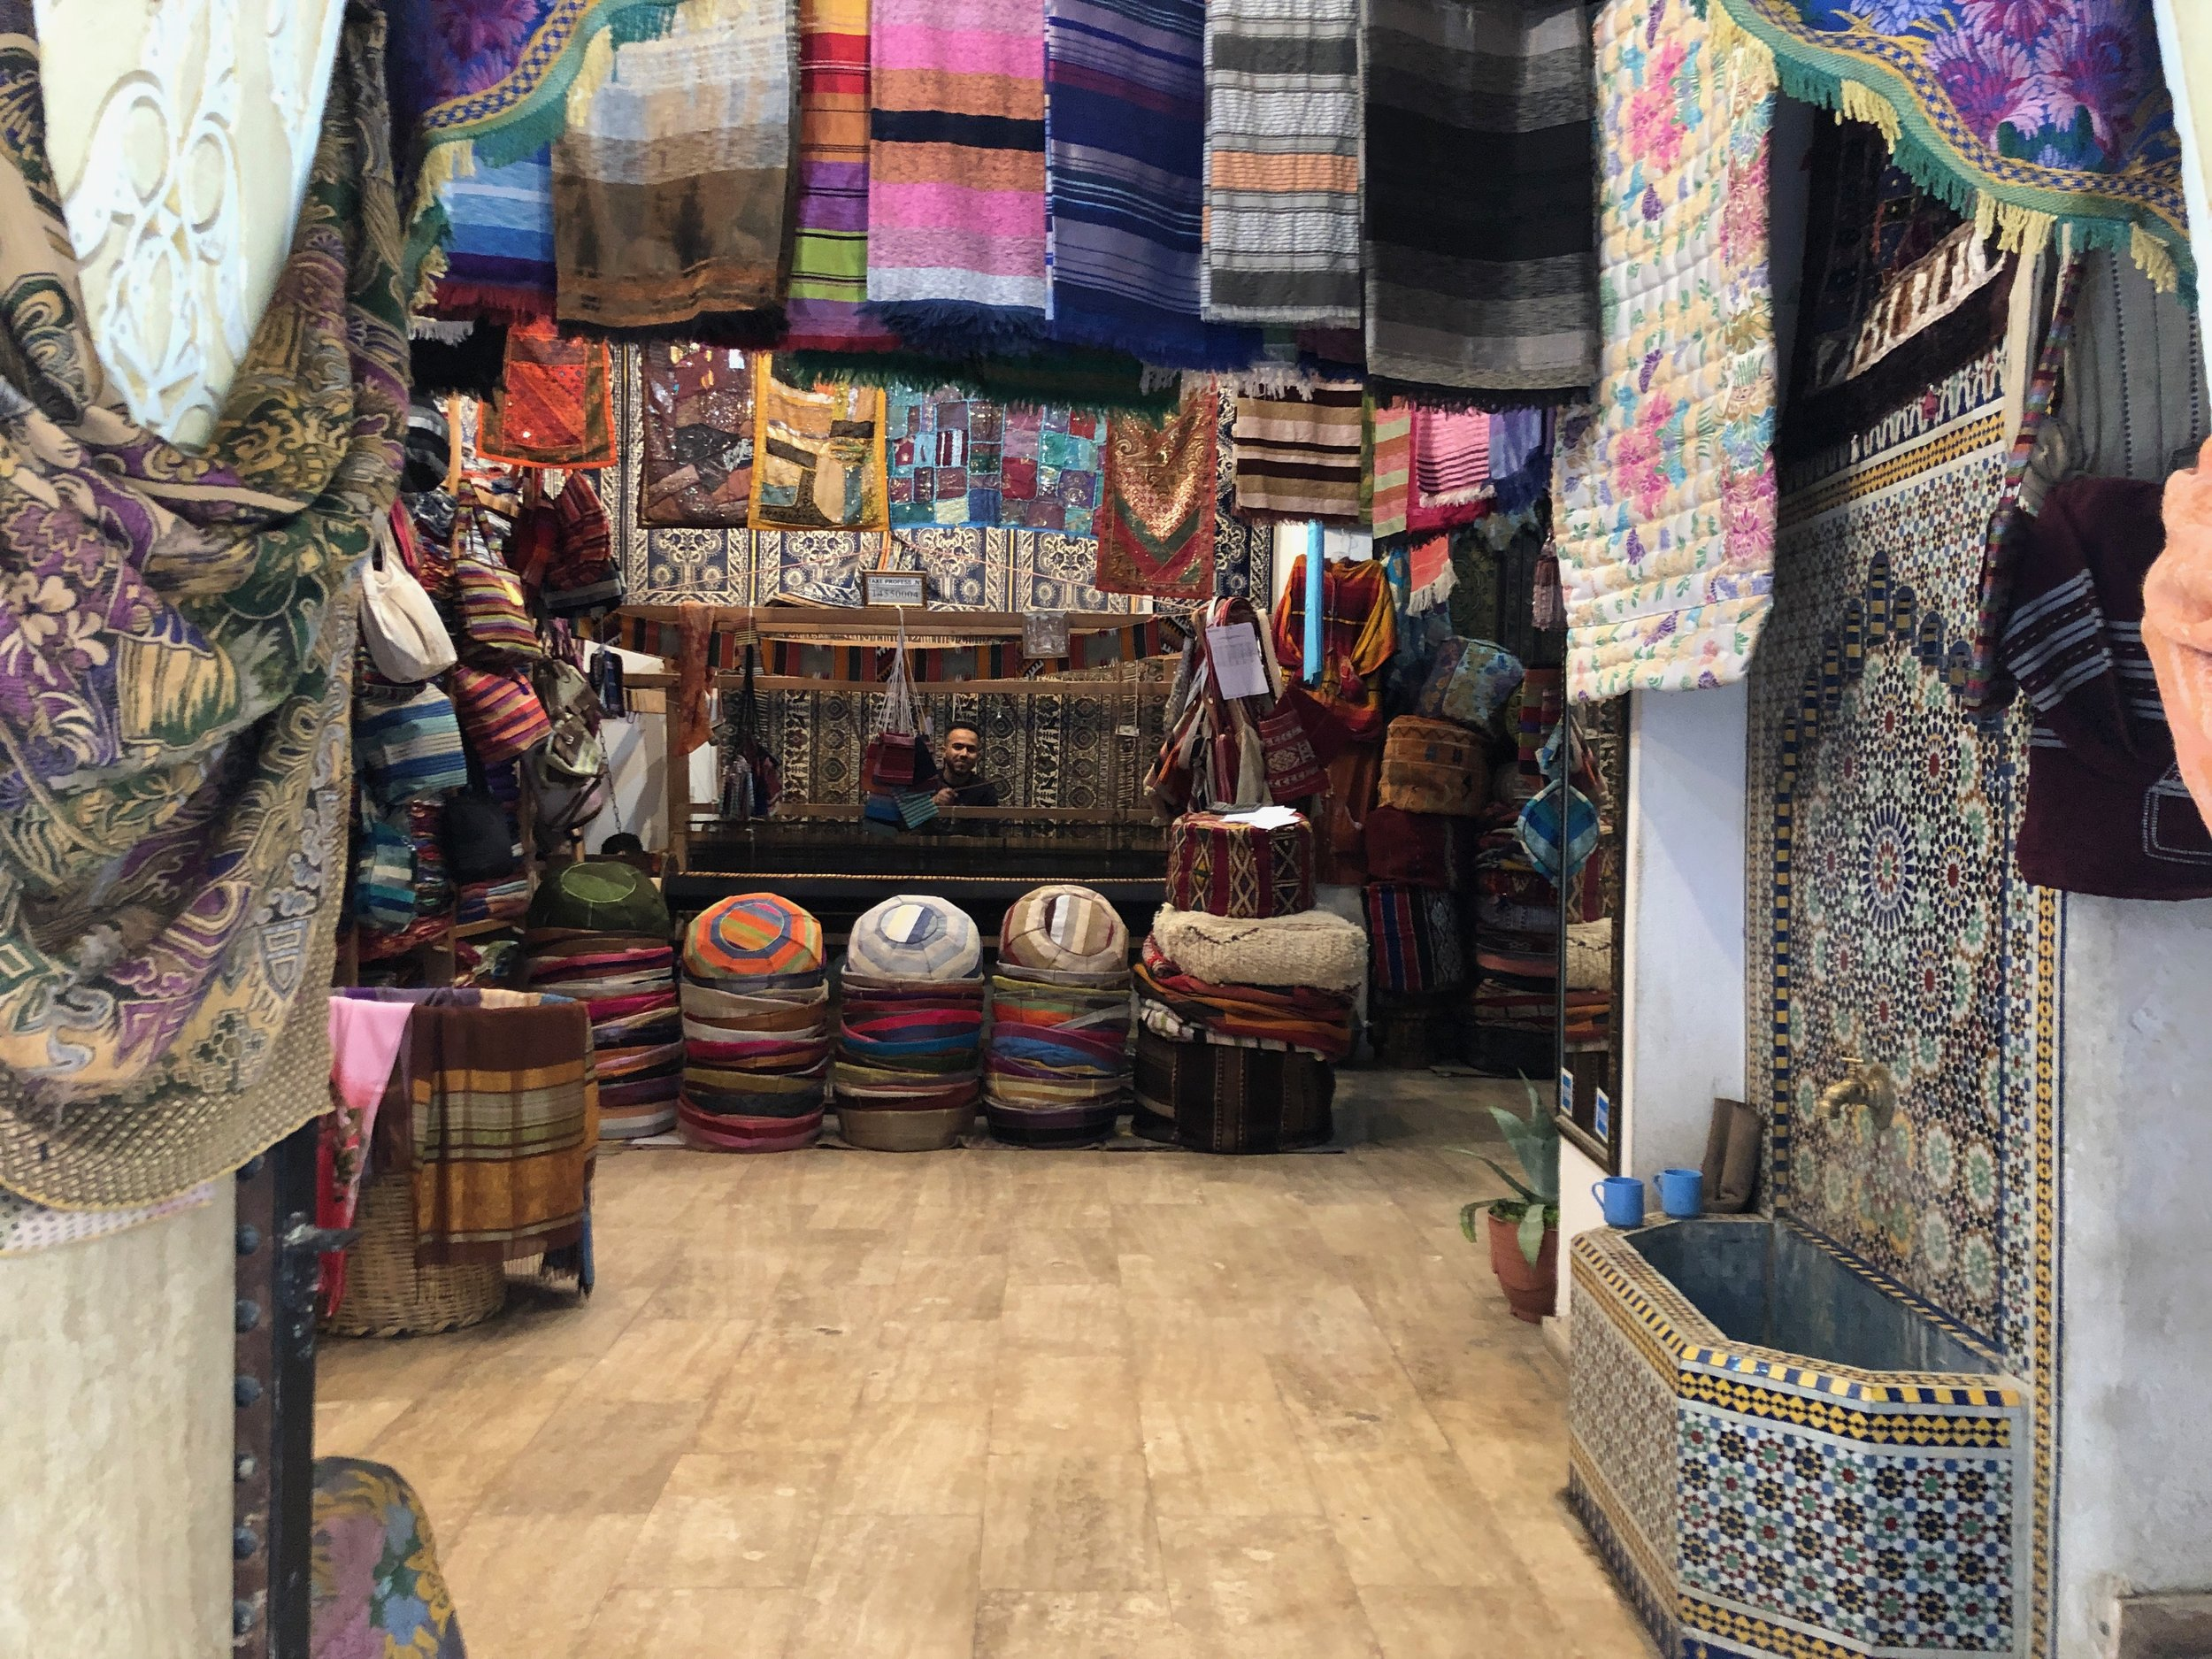 Textiles are everywhere in the medina